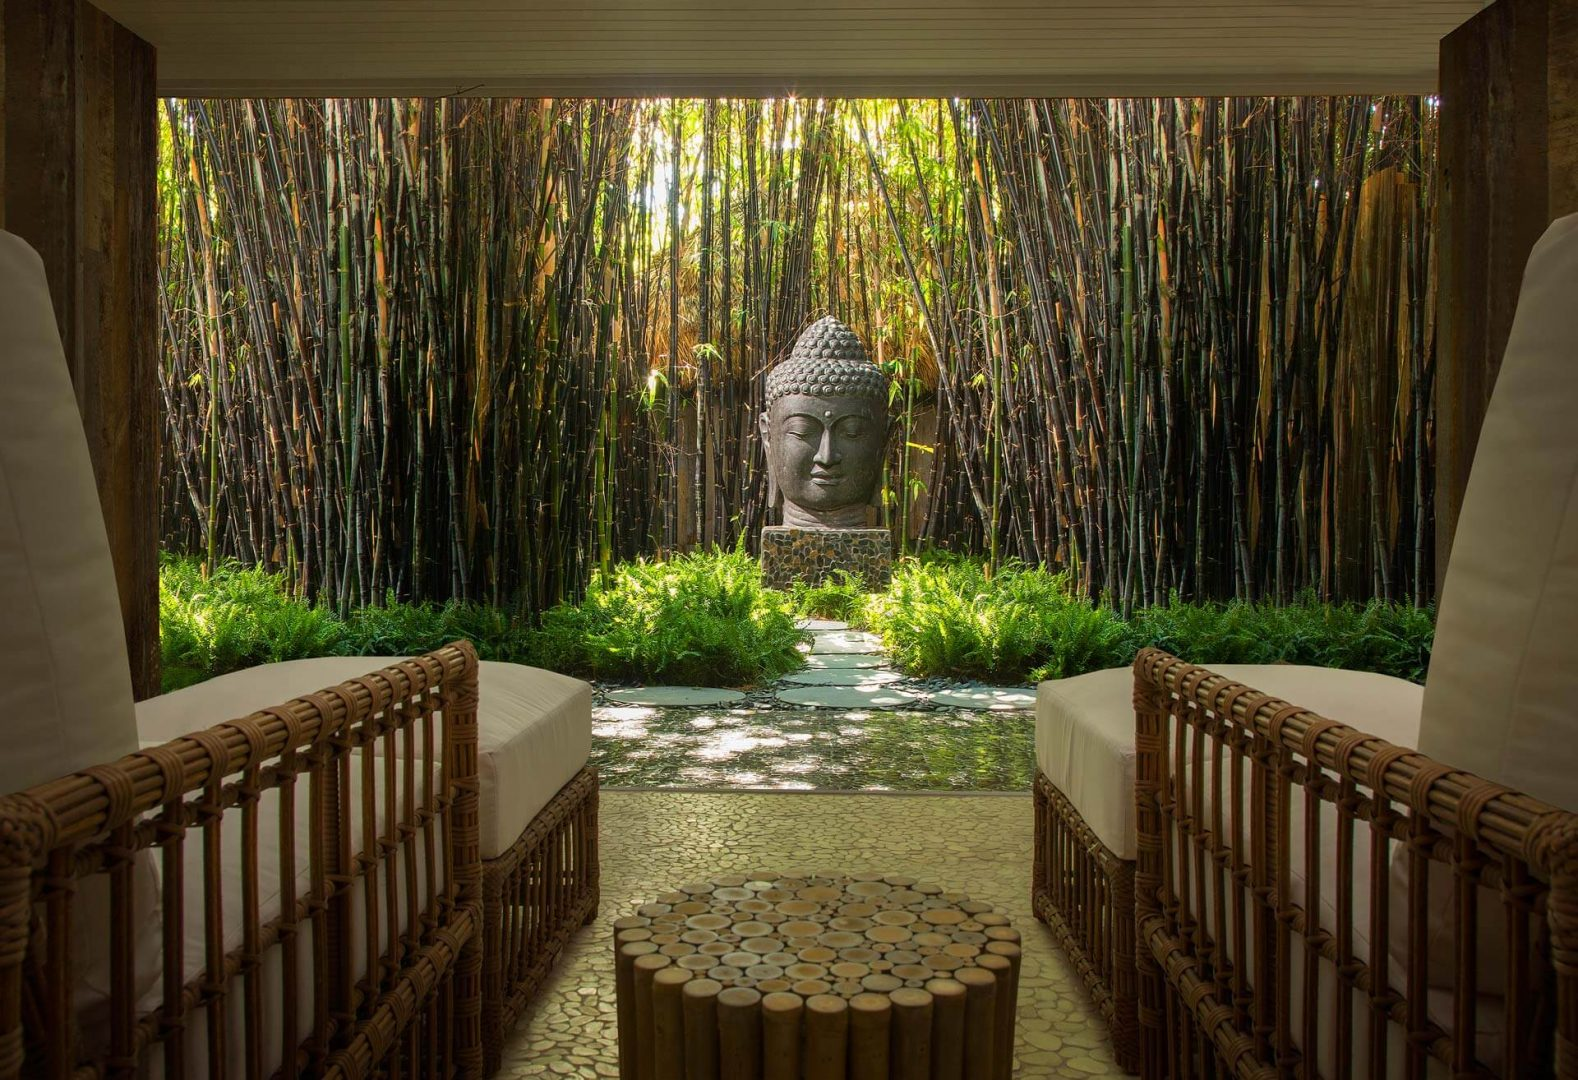 Bamboo garden with Buddha head and two chairs